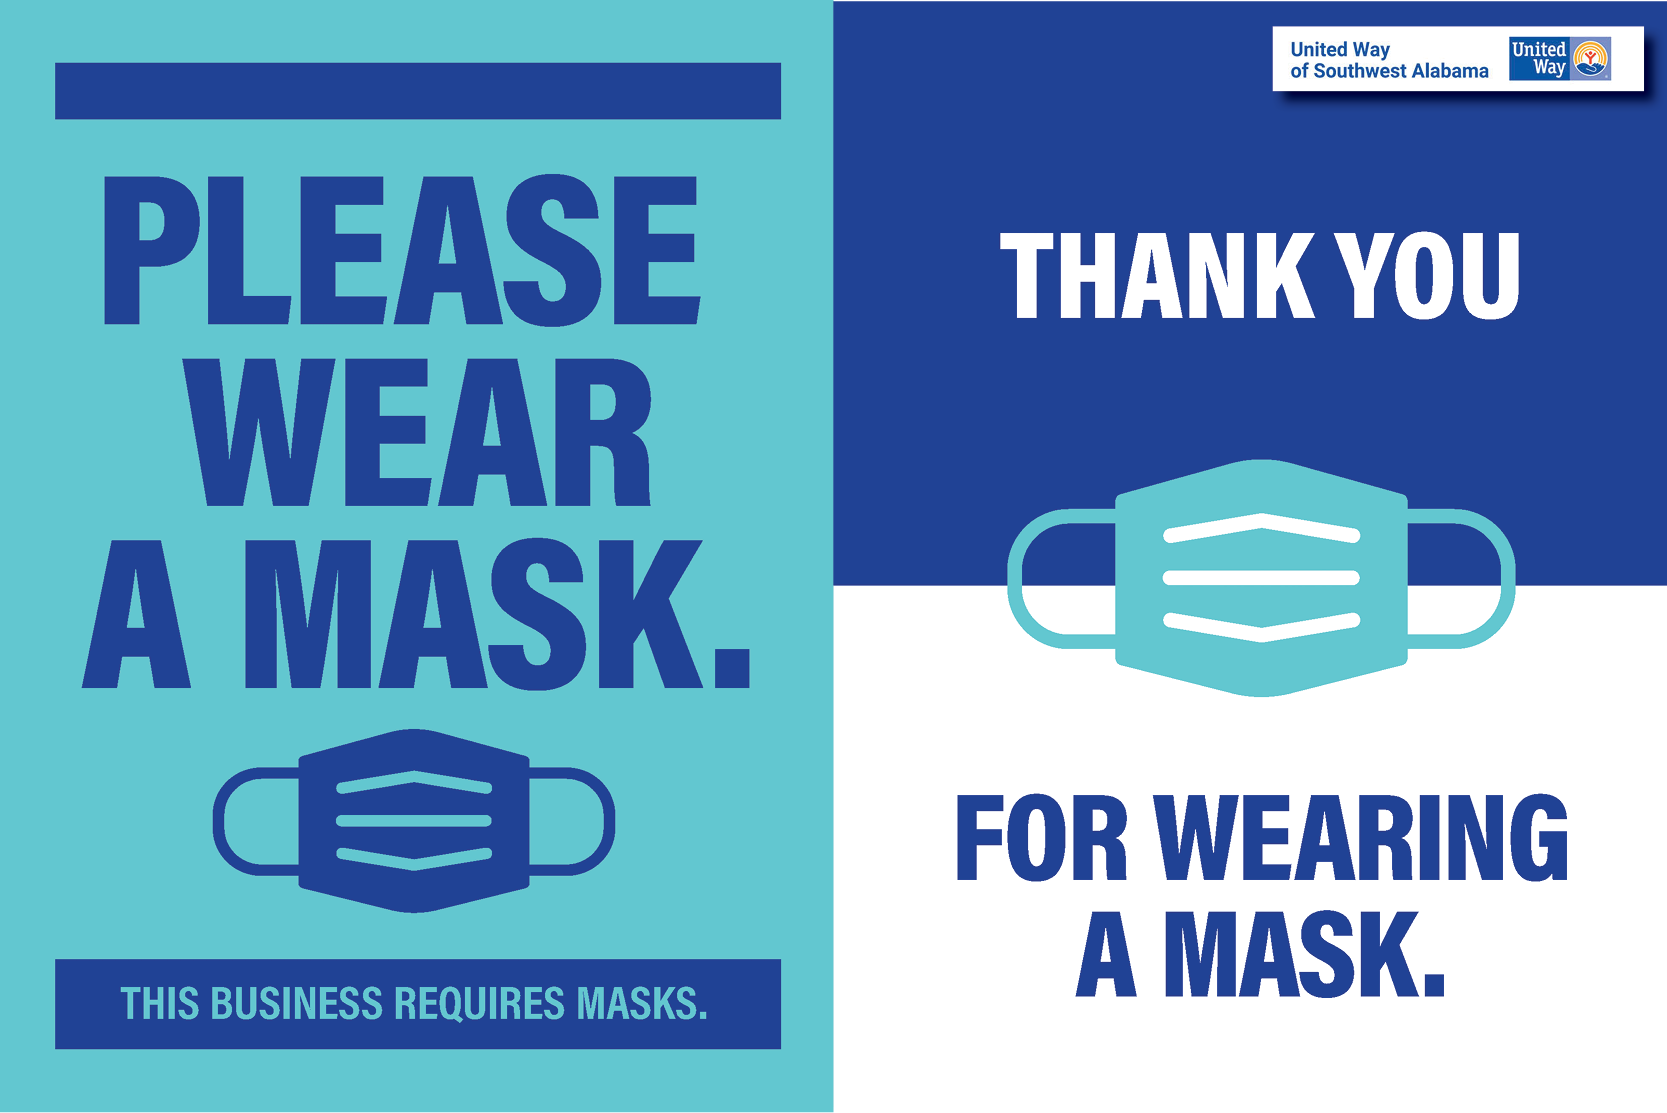 Safer Apart - Please wear a mask